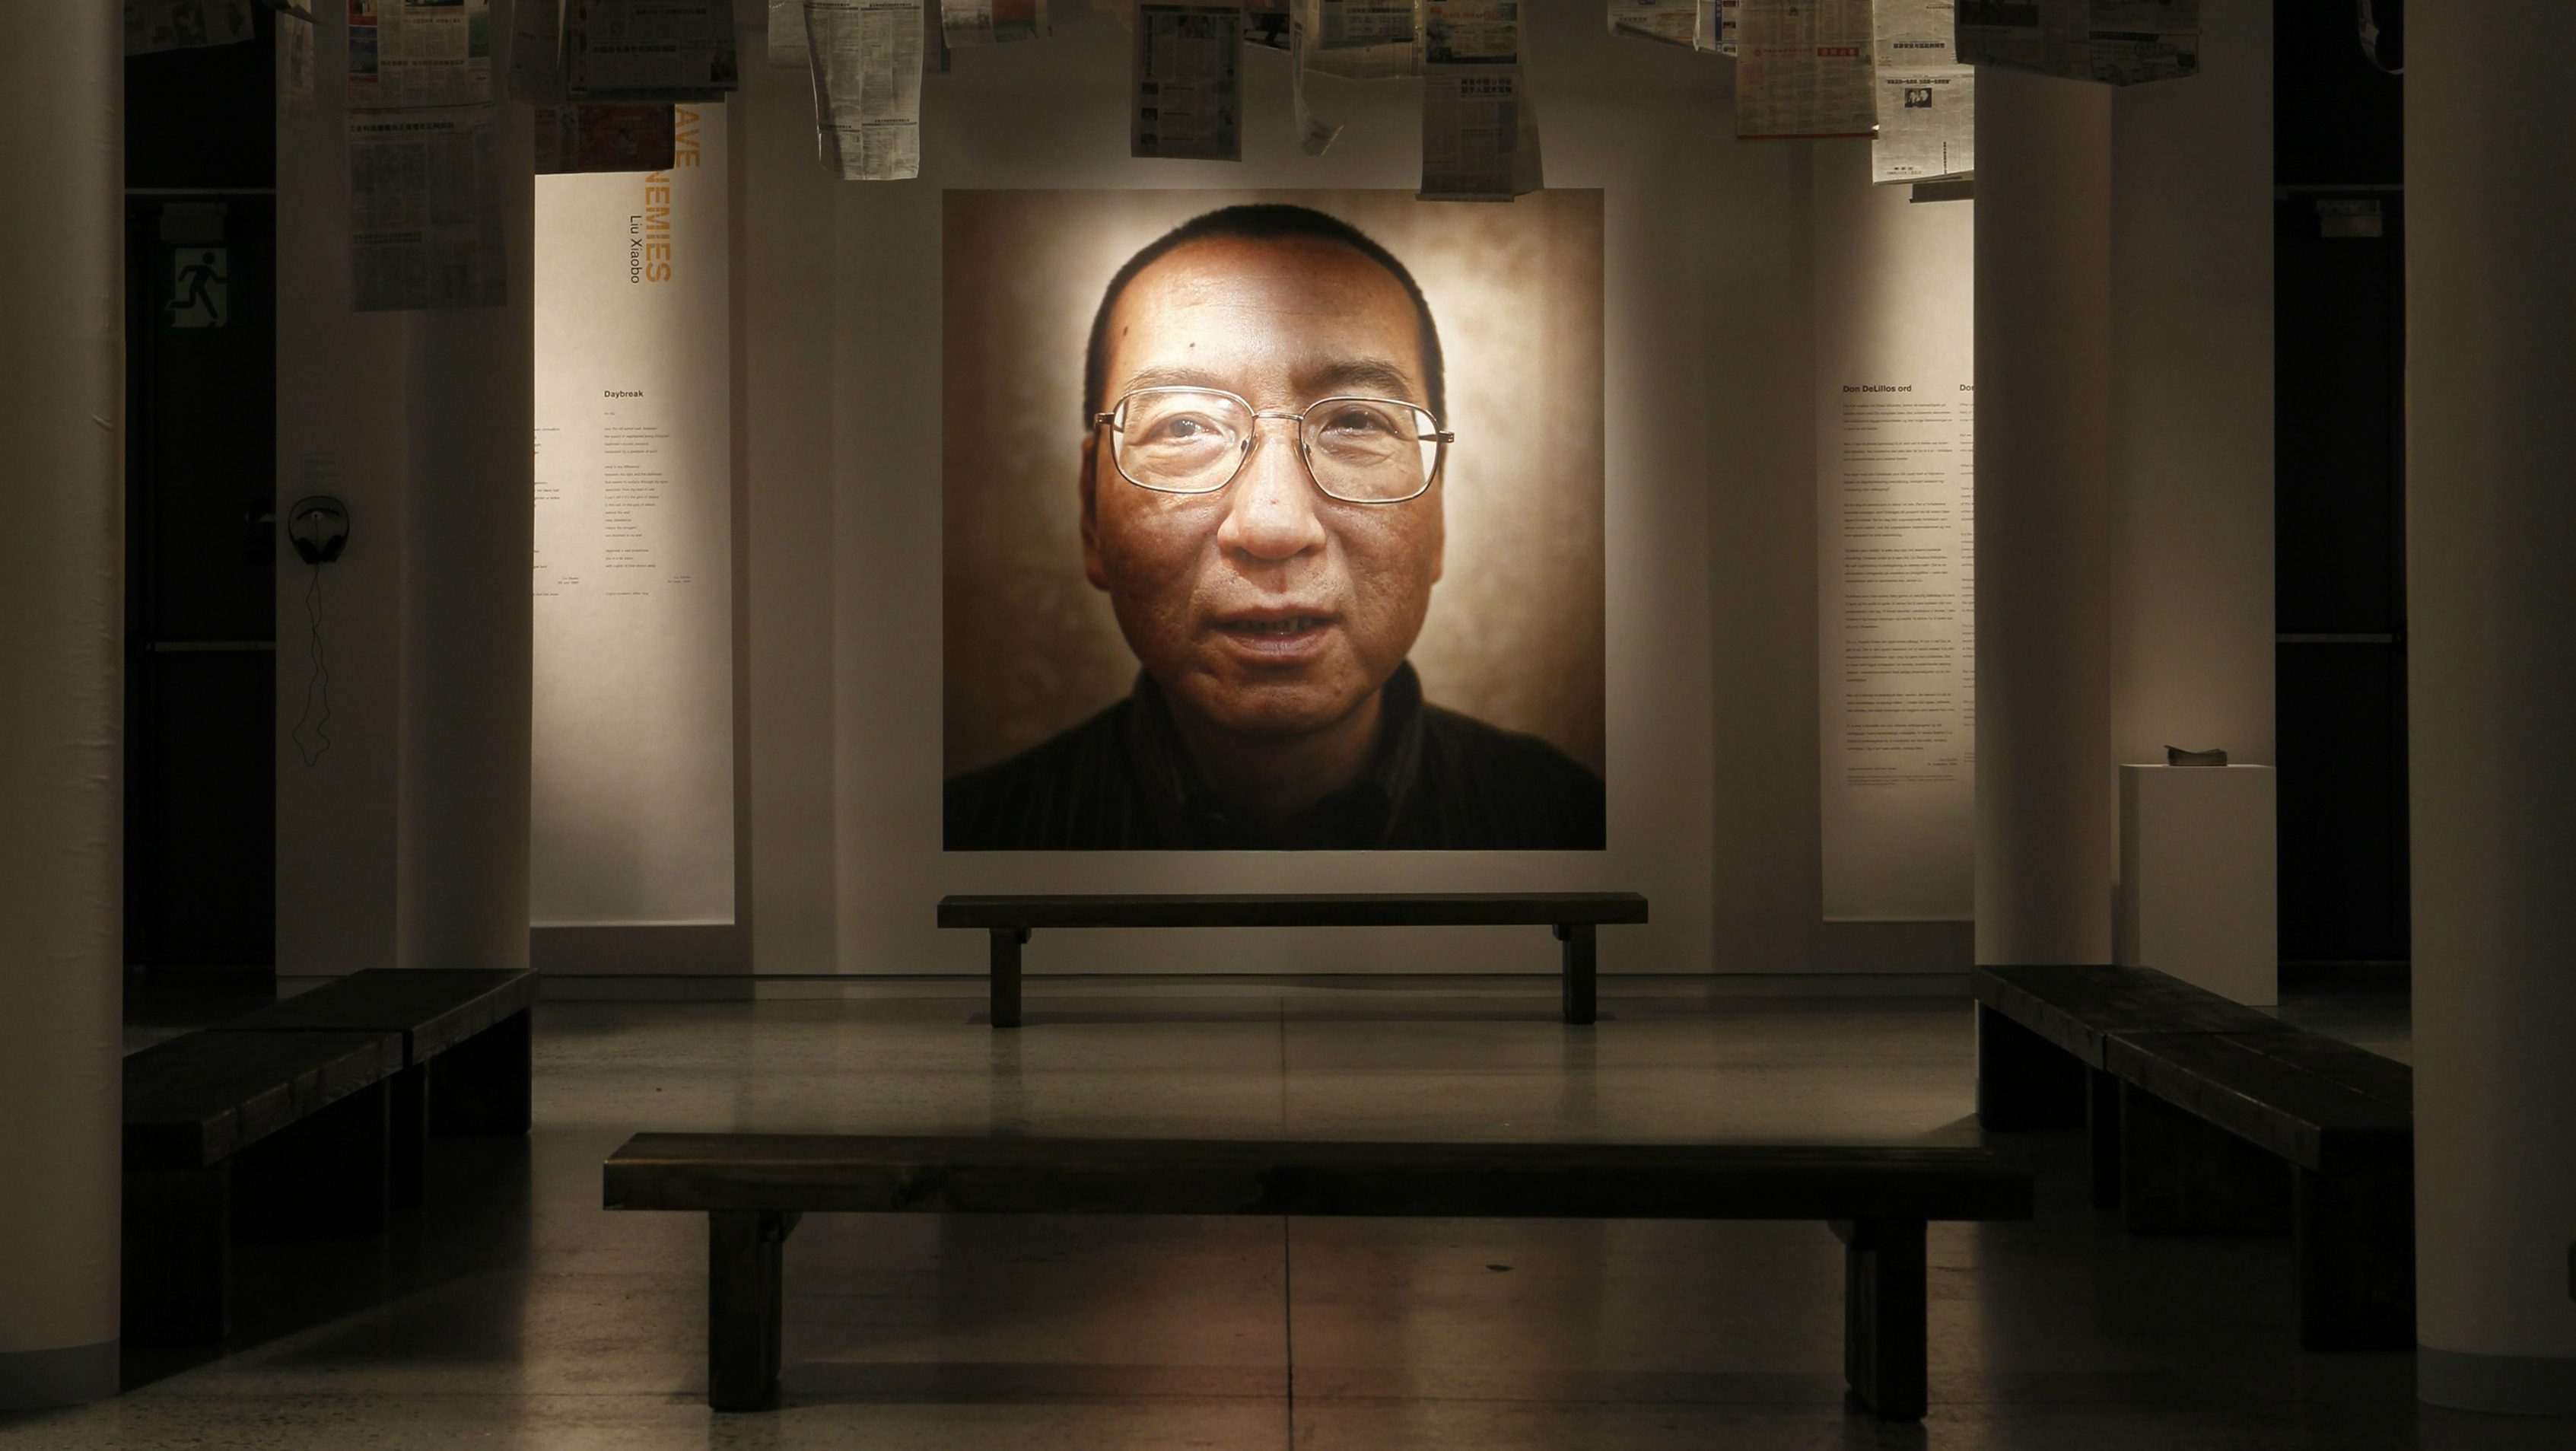 A picture of this year's Nobel Peace Laureate Liu Xiaobo is seen at an exhibition at the Nobel Peace Center in Oslo